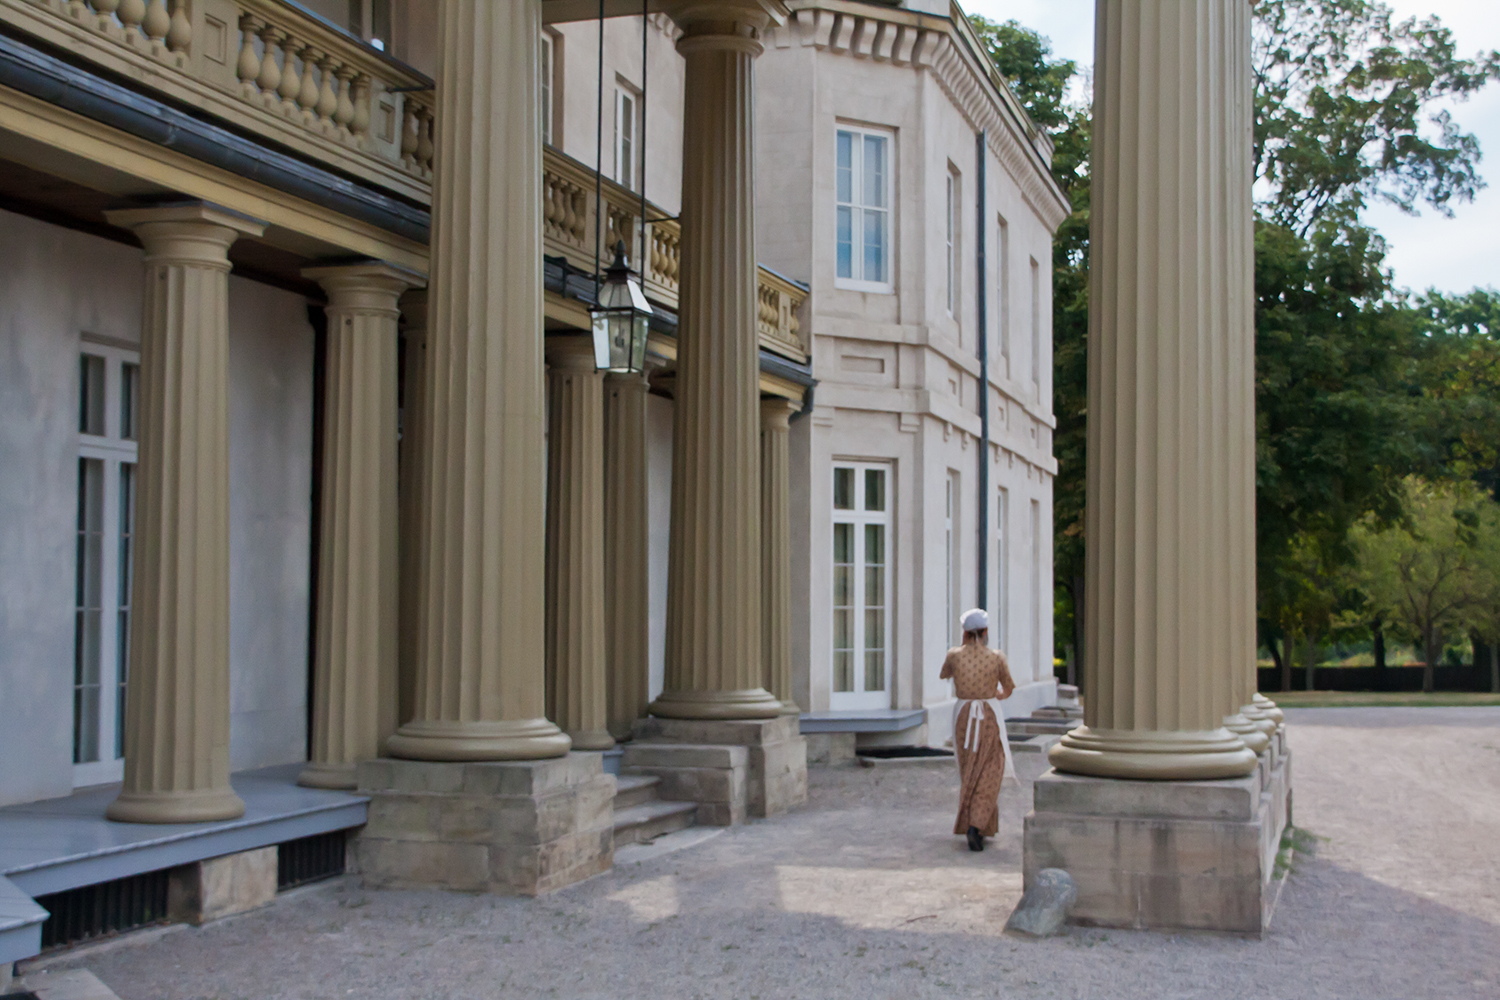 photo of old building with pillars